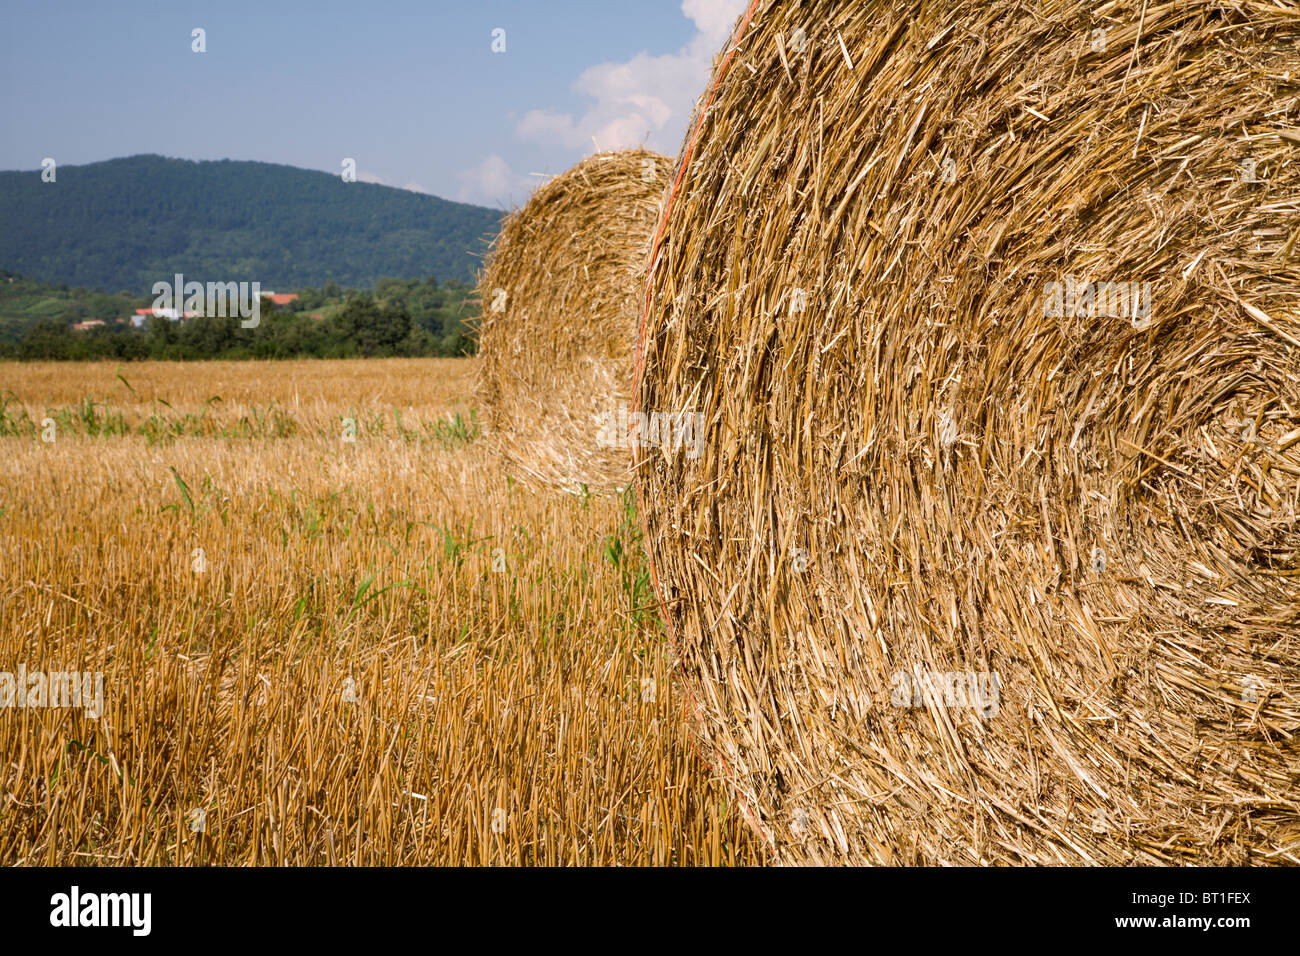 bale of the straw - Stock Image